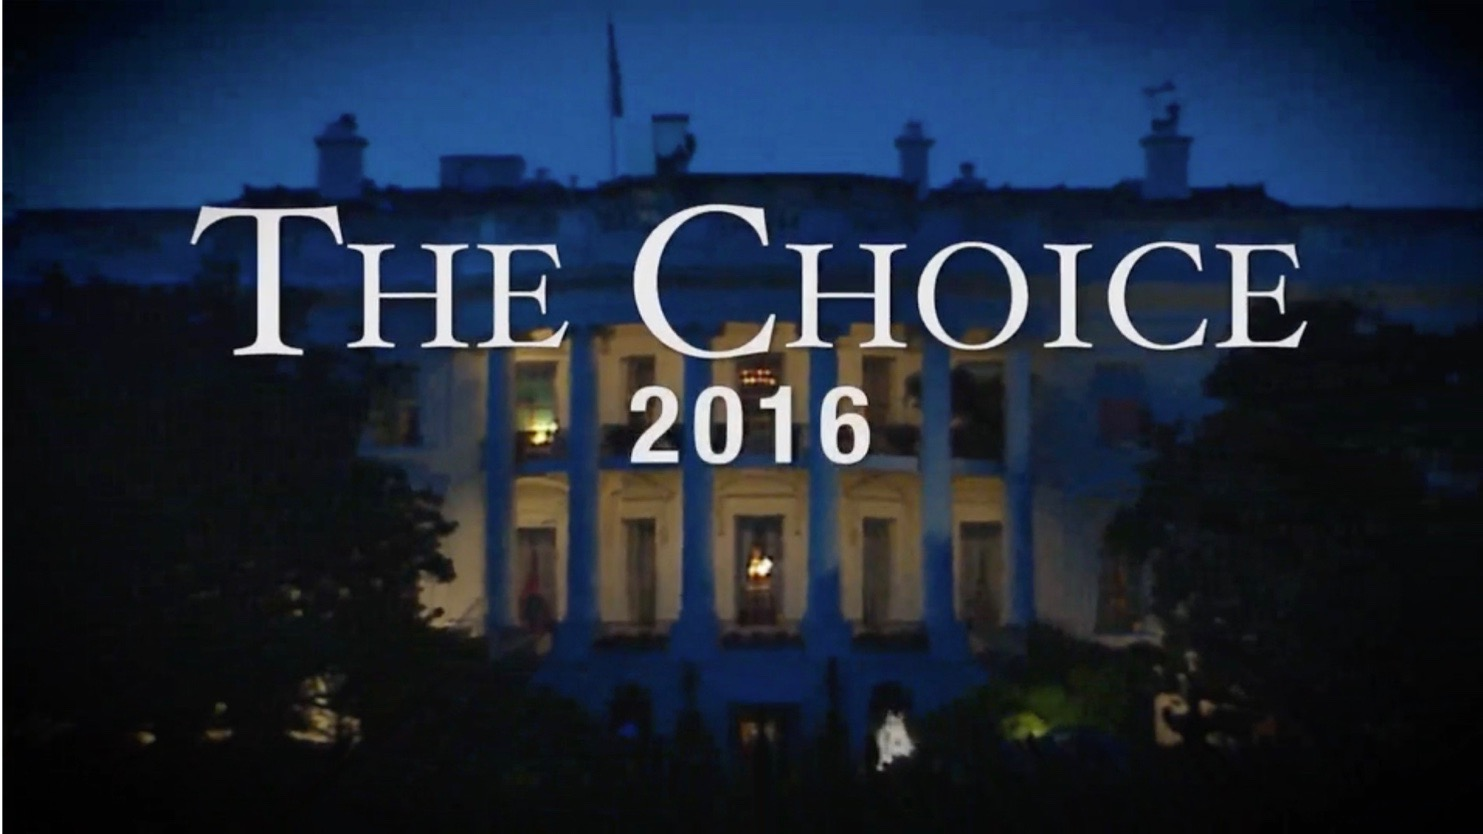 The Choice 2016: Tuesday, September 27, 9 p.m.